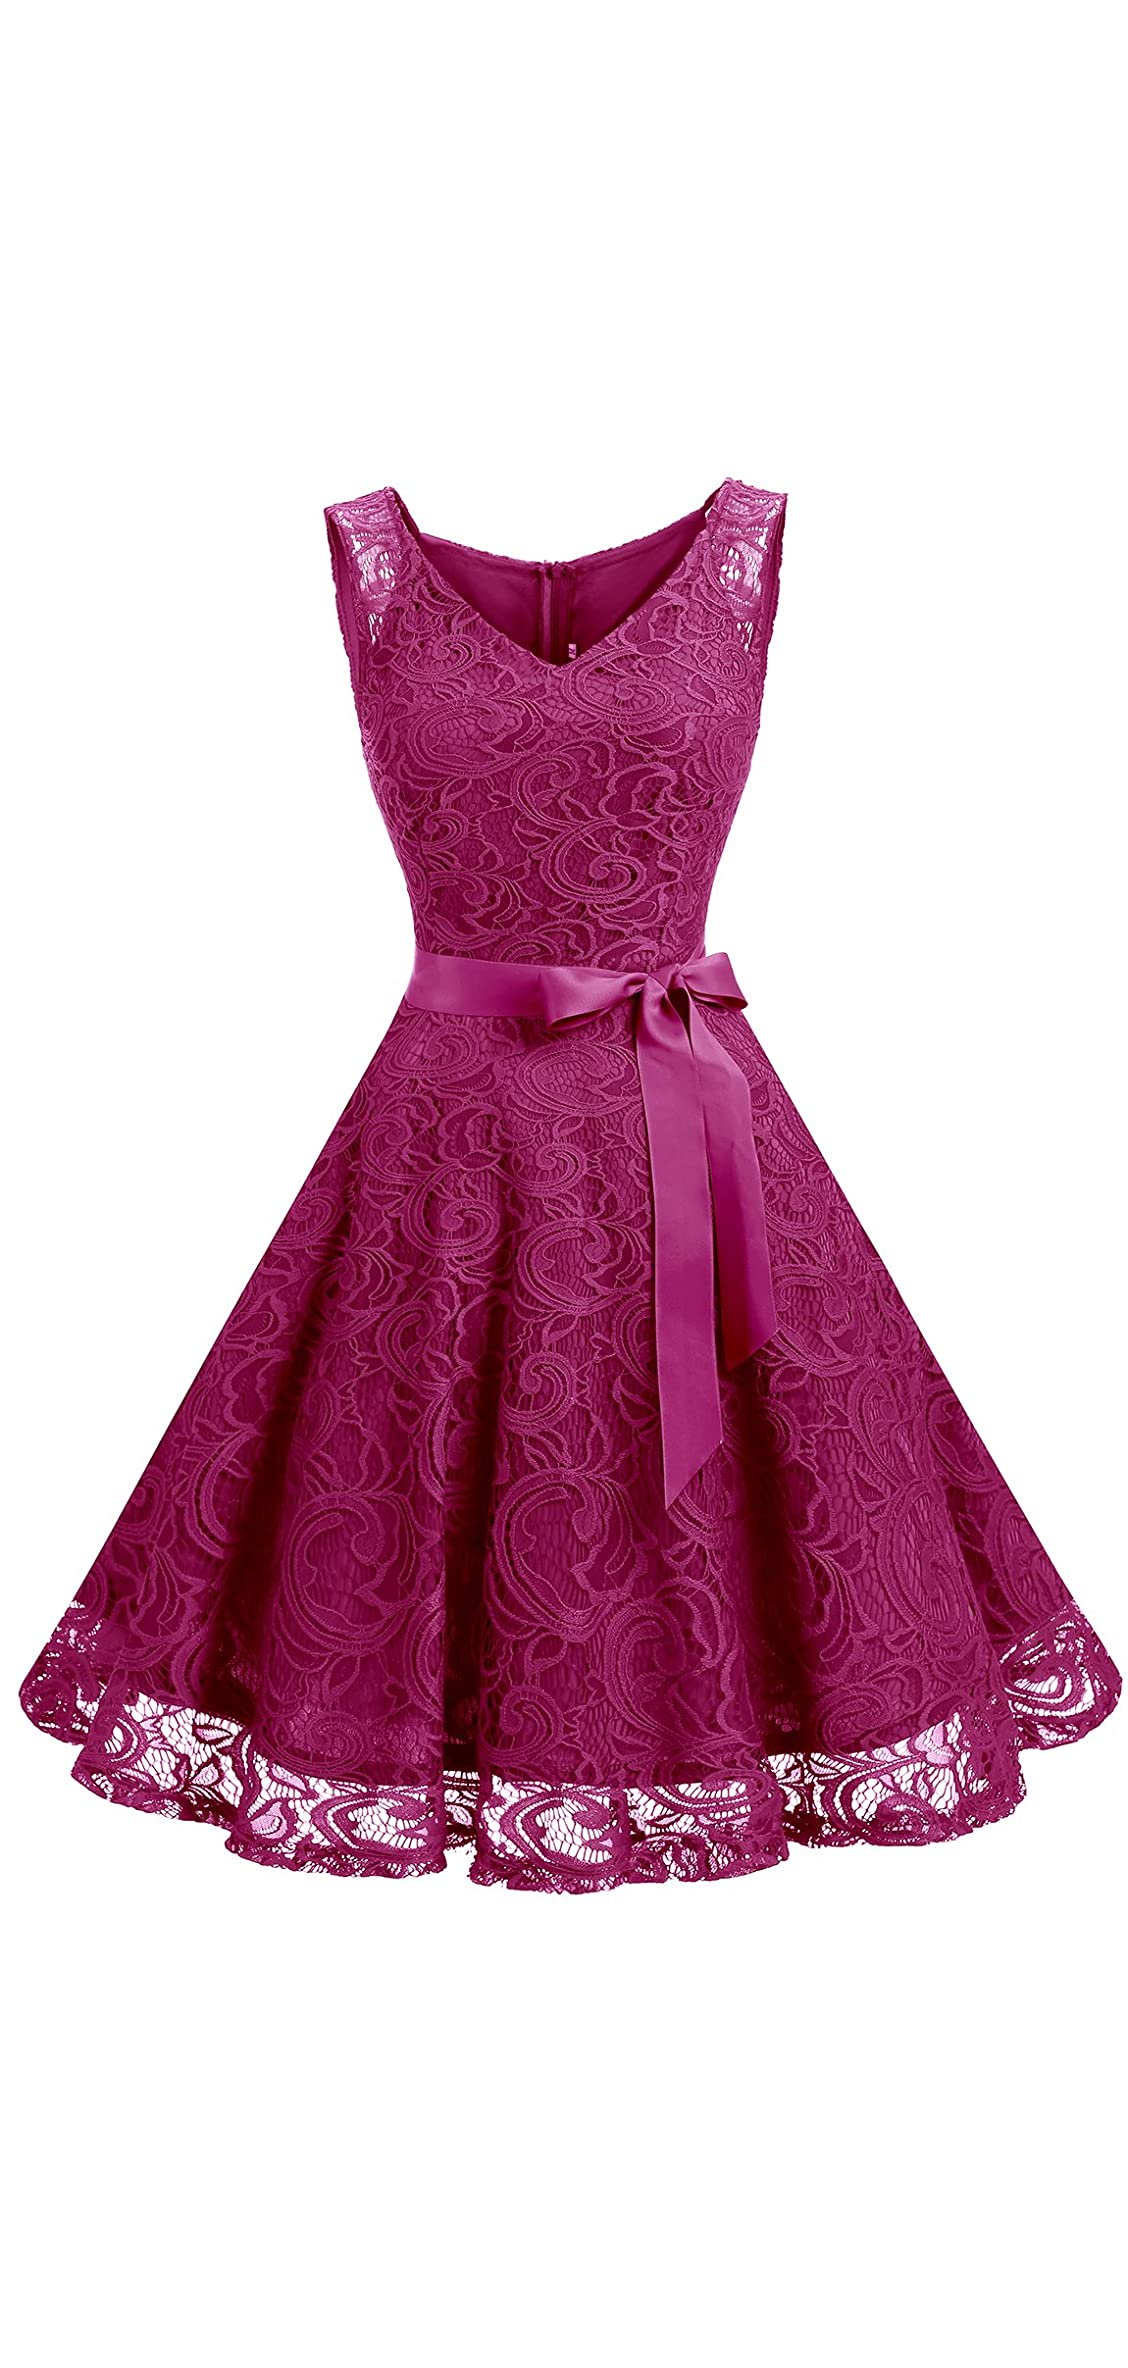 Women Floral Lace Bridesmaid Party Dress Short Prom V